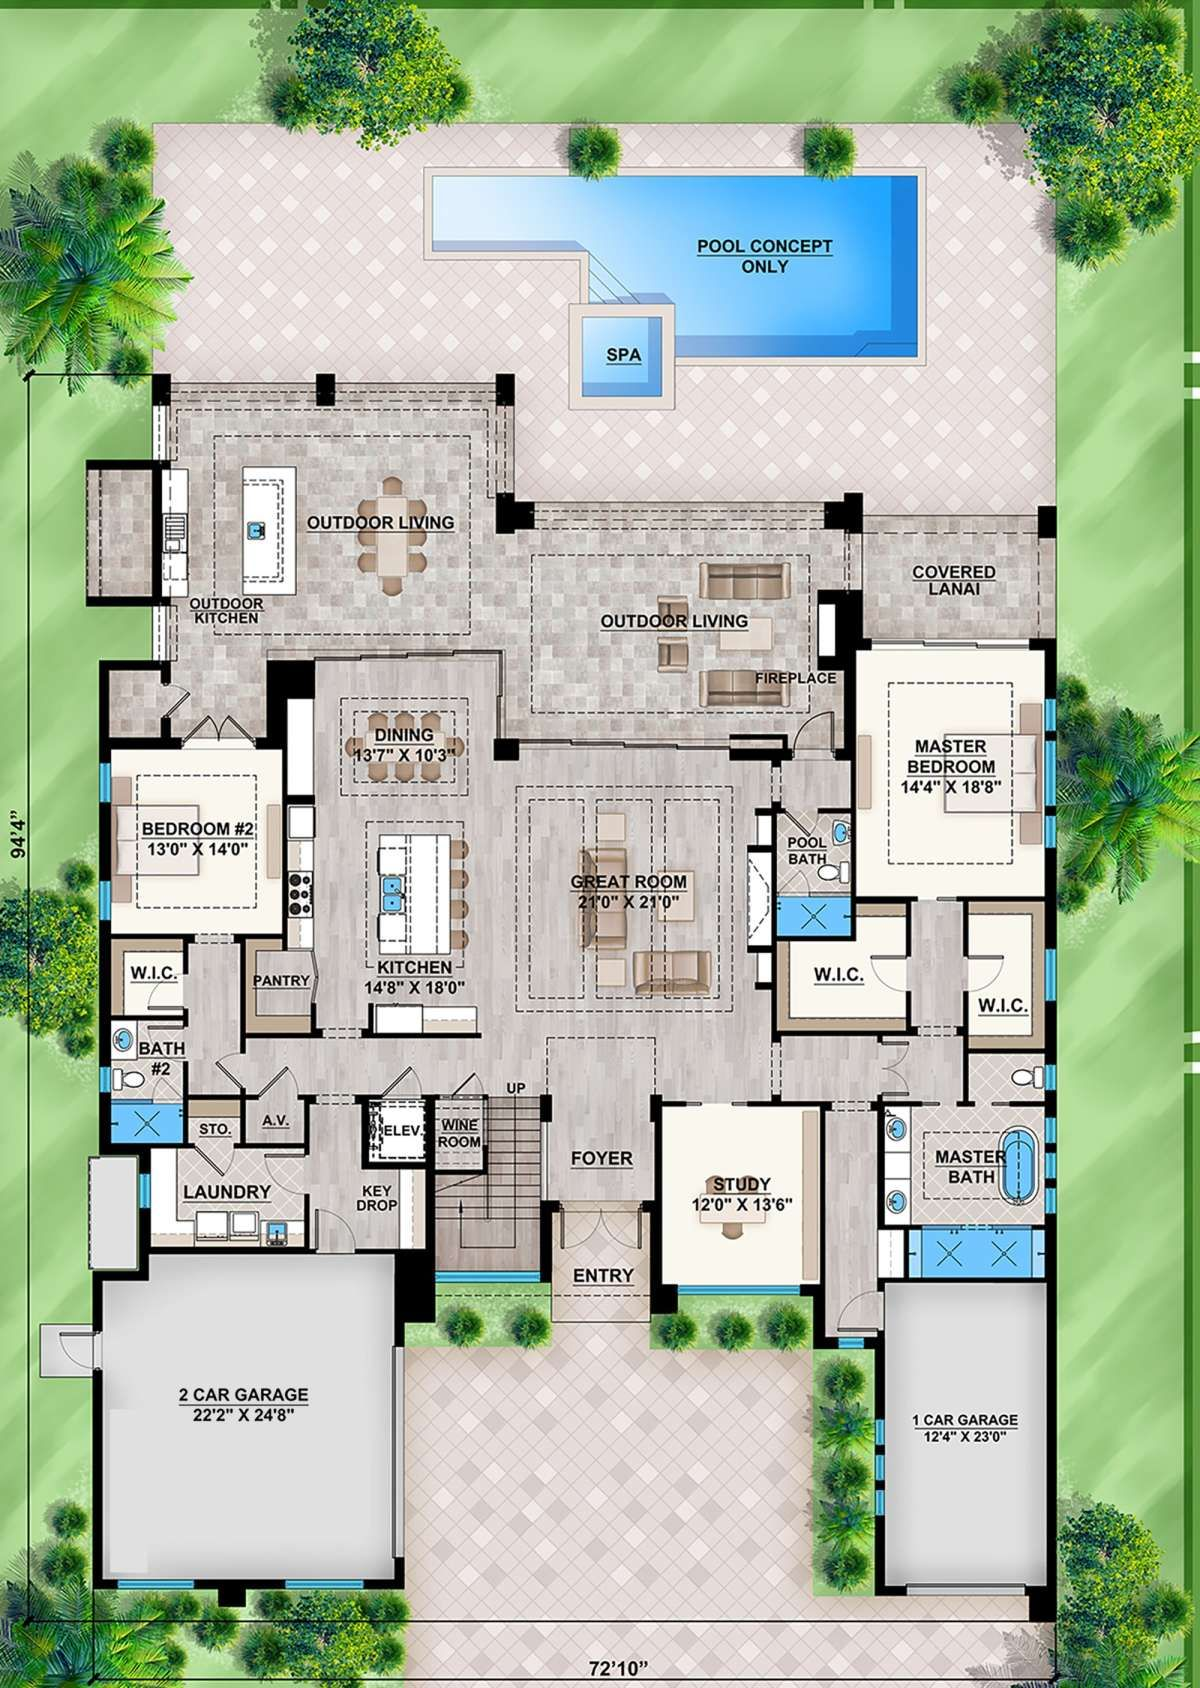 House Plan 207 00075 Contemporary Plan 4 232 Square Feet 4 Bedrooms 5 Bathrooms Pool House Plans Courtyard House Plans Dream House Plans